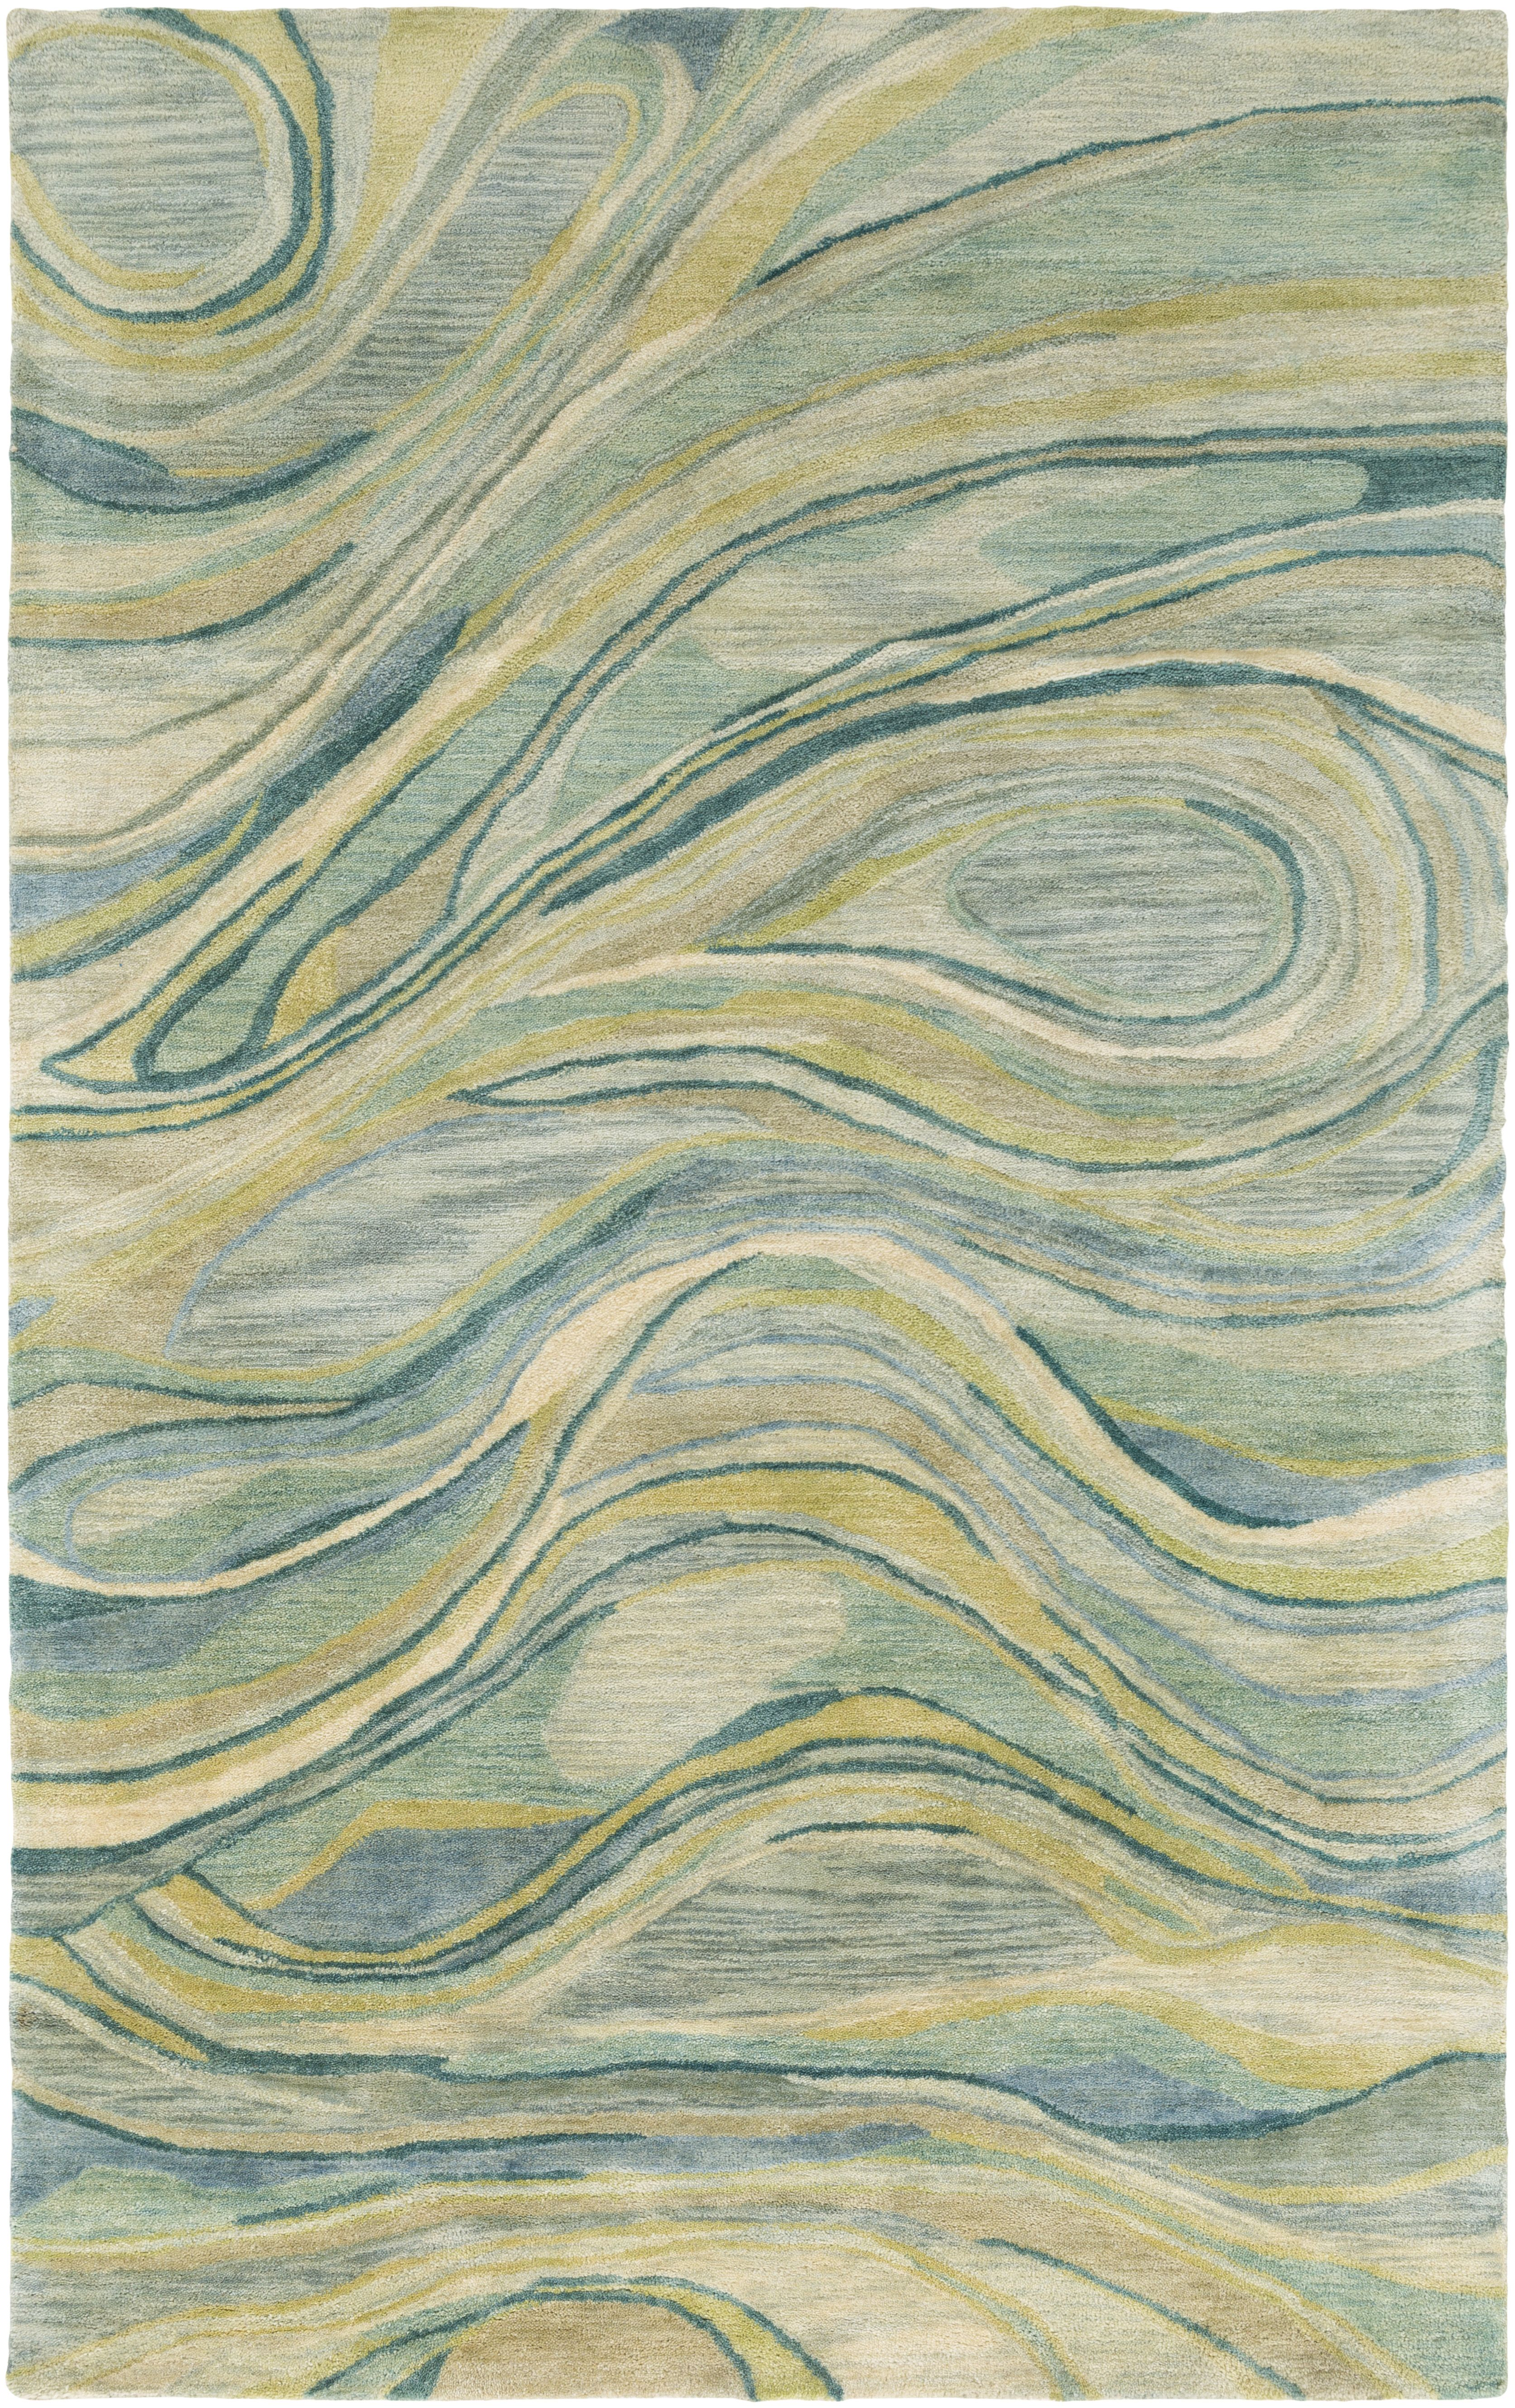 A Flowy Blend Of Soothing Sage Mint Lime Emerald And Cream Make Up This 100 Wool Rug By Designer And Wate Modern Wool Rugs Contemporary Area Rugs Area Rugs